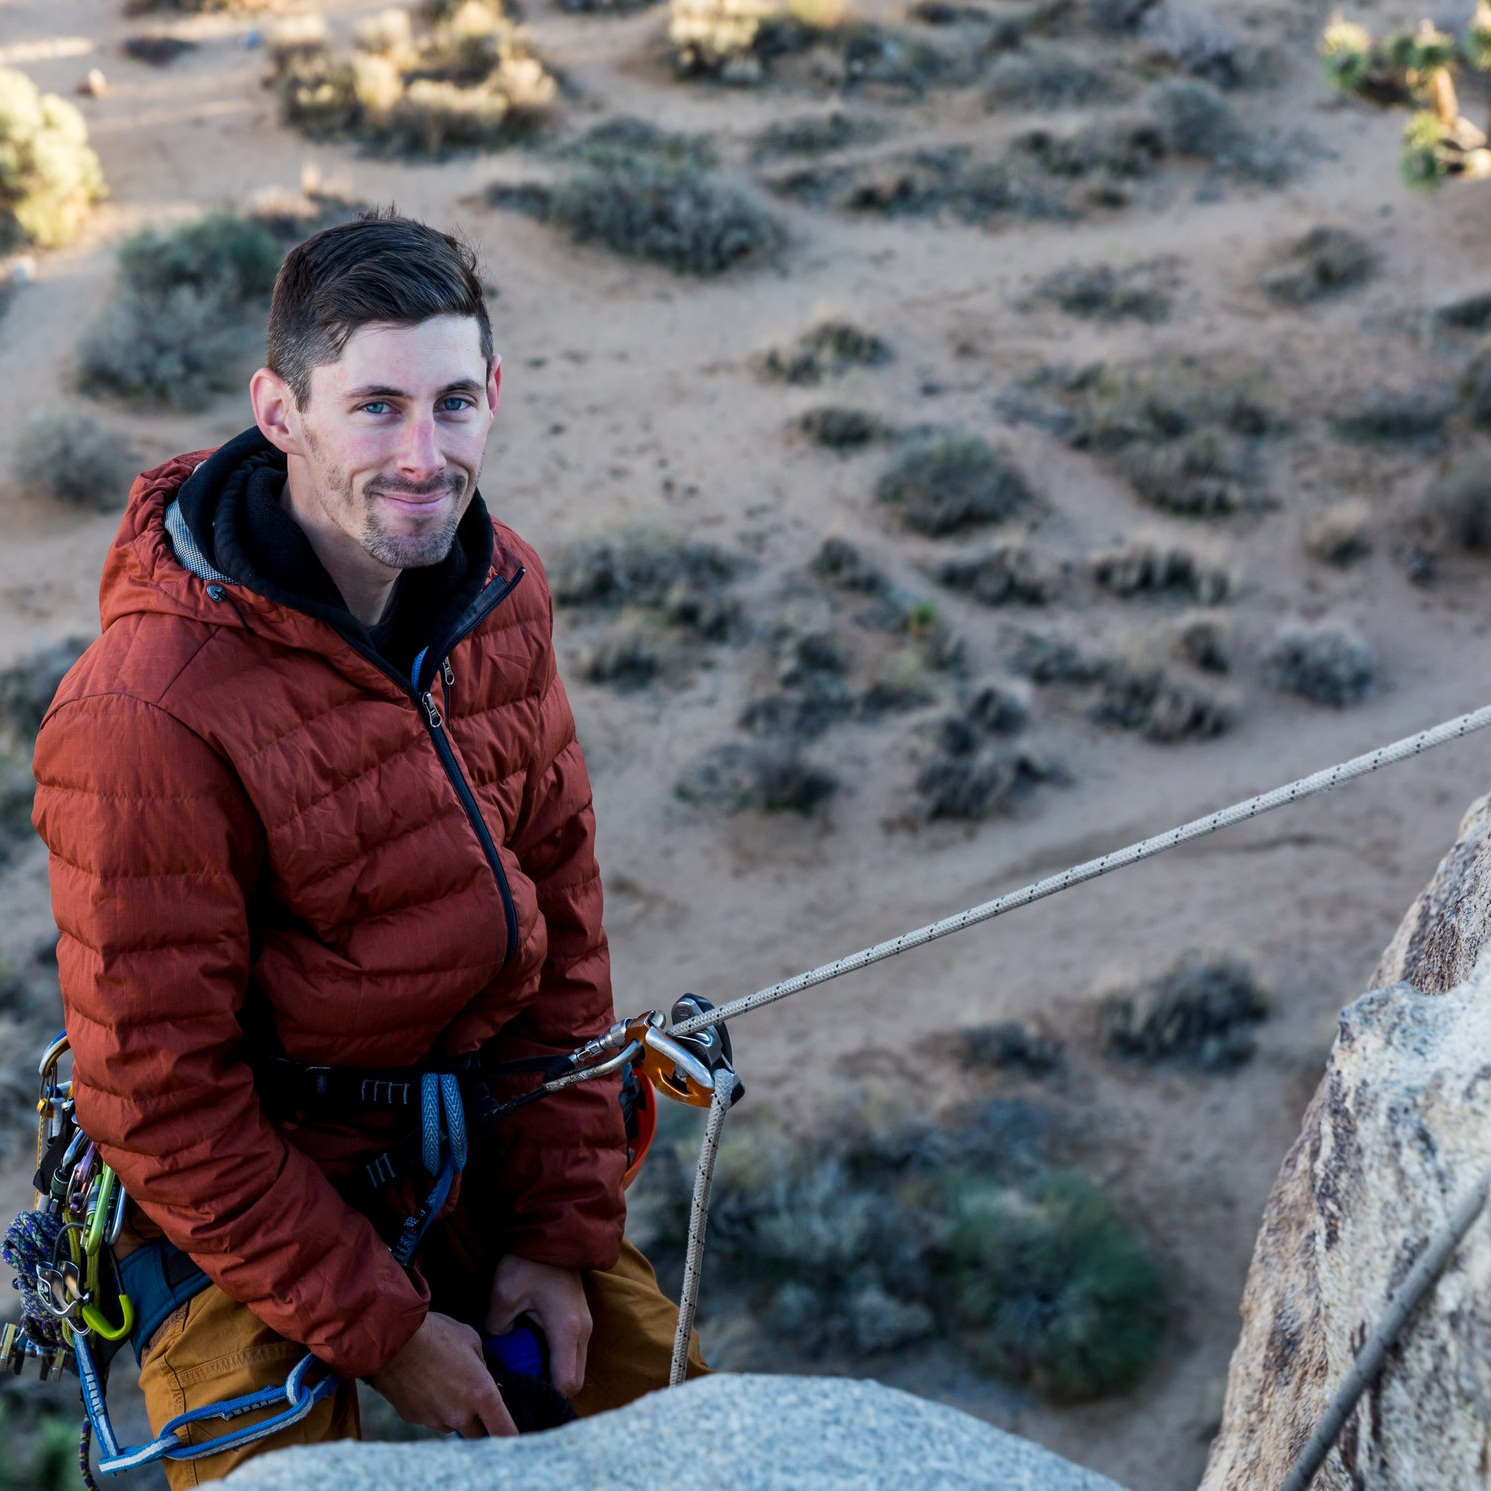 Tyler Dandurand -Education Co-Director - In August 2015 Tyler reluctantly went to a climbing gym for the first time, and never looked back. Since that day he has fervently worked on developing his skills as a climber and fine-tuning his systems to be a proficient partner and guide.His favorite place to climb is Red Rock Canyon National Park in Nevada where he's spent countless hours on some of the best sandstone around. When he isn't climbing, he's spending time with his daughter, Jordan, working full time at a hearing aid clinic in San Diego, or thinking about climbing. Tyler loves introducing people to the world of climbing and is eager to share his knowledge and passion for it with others.